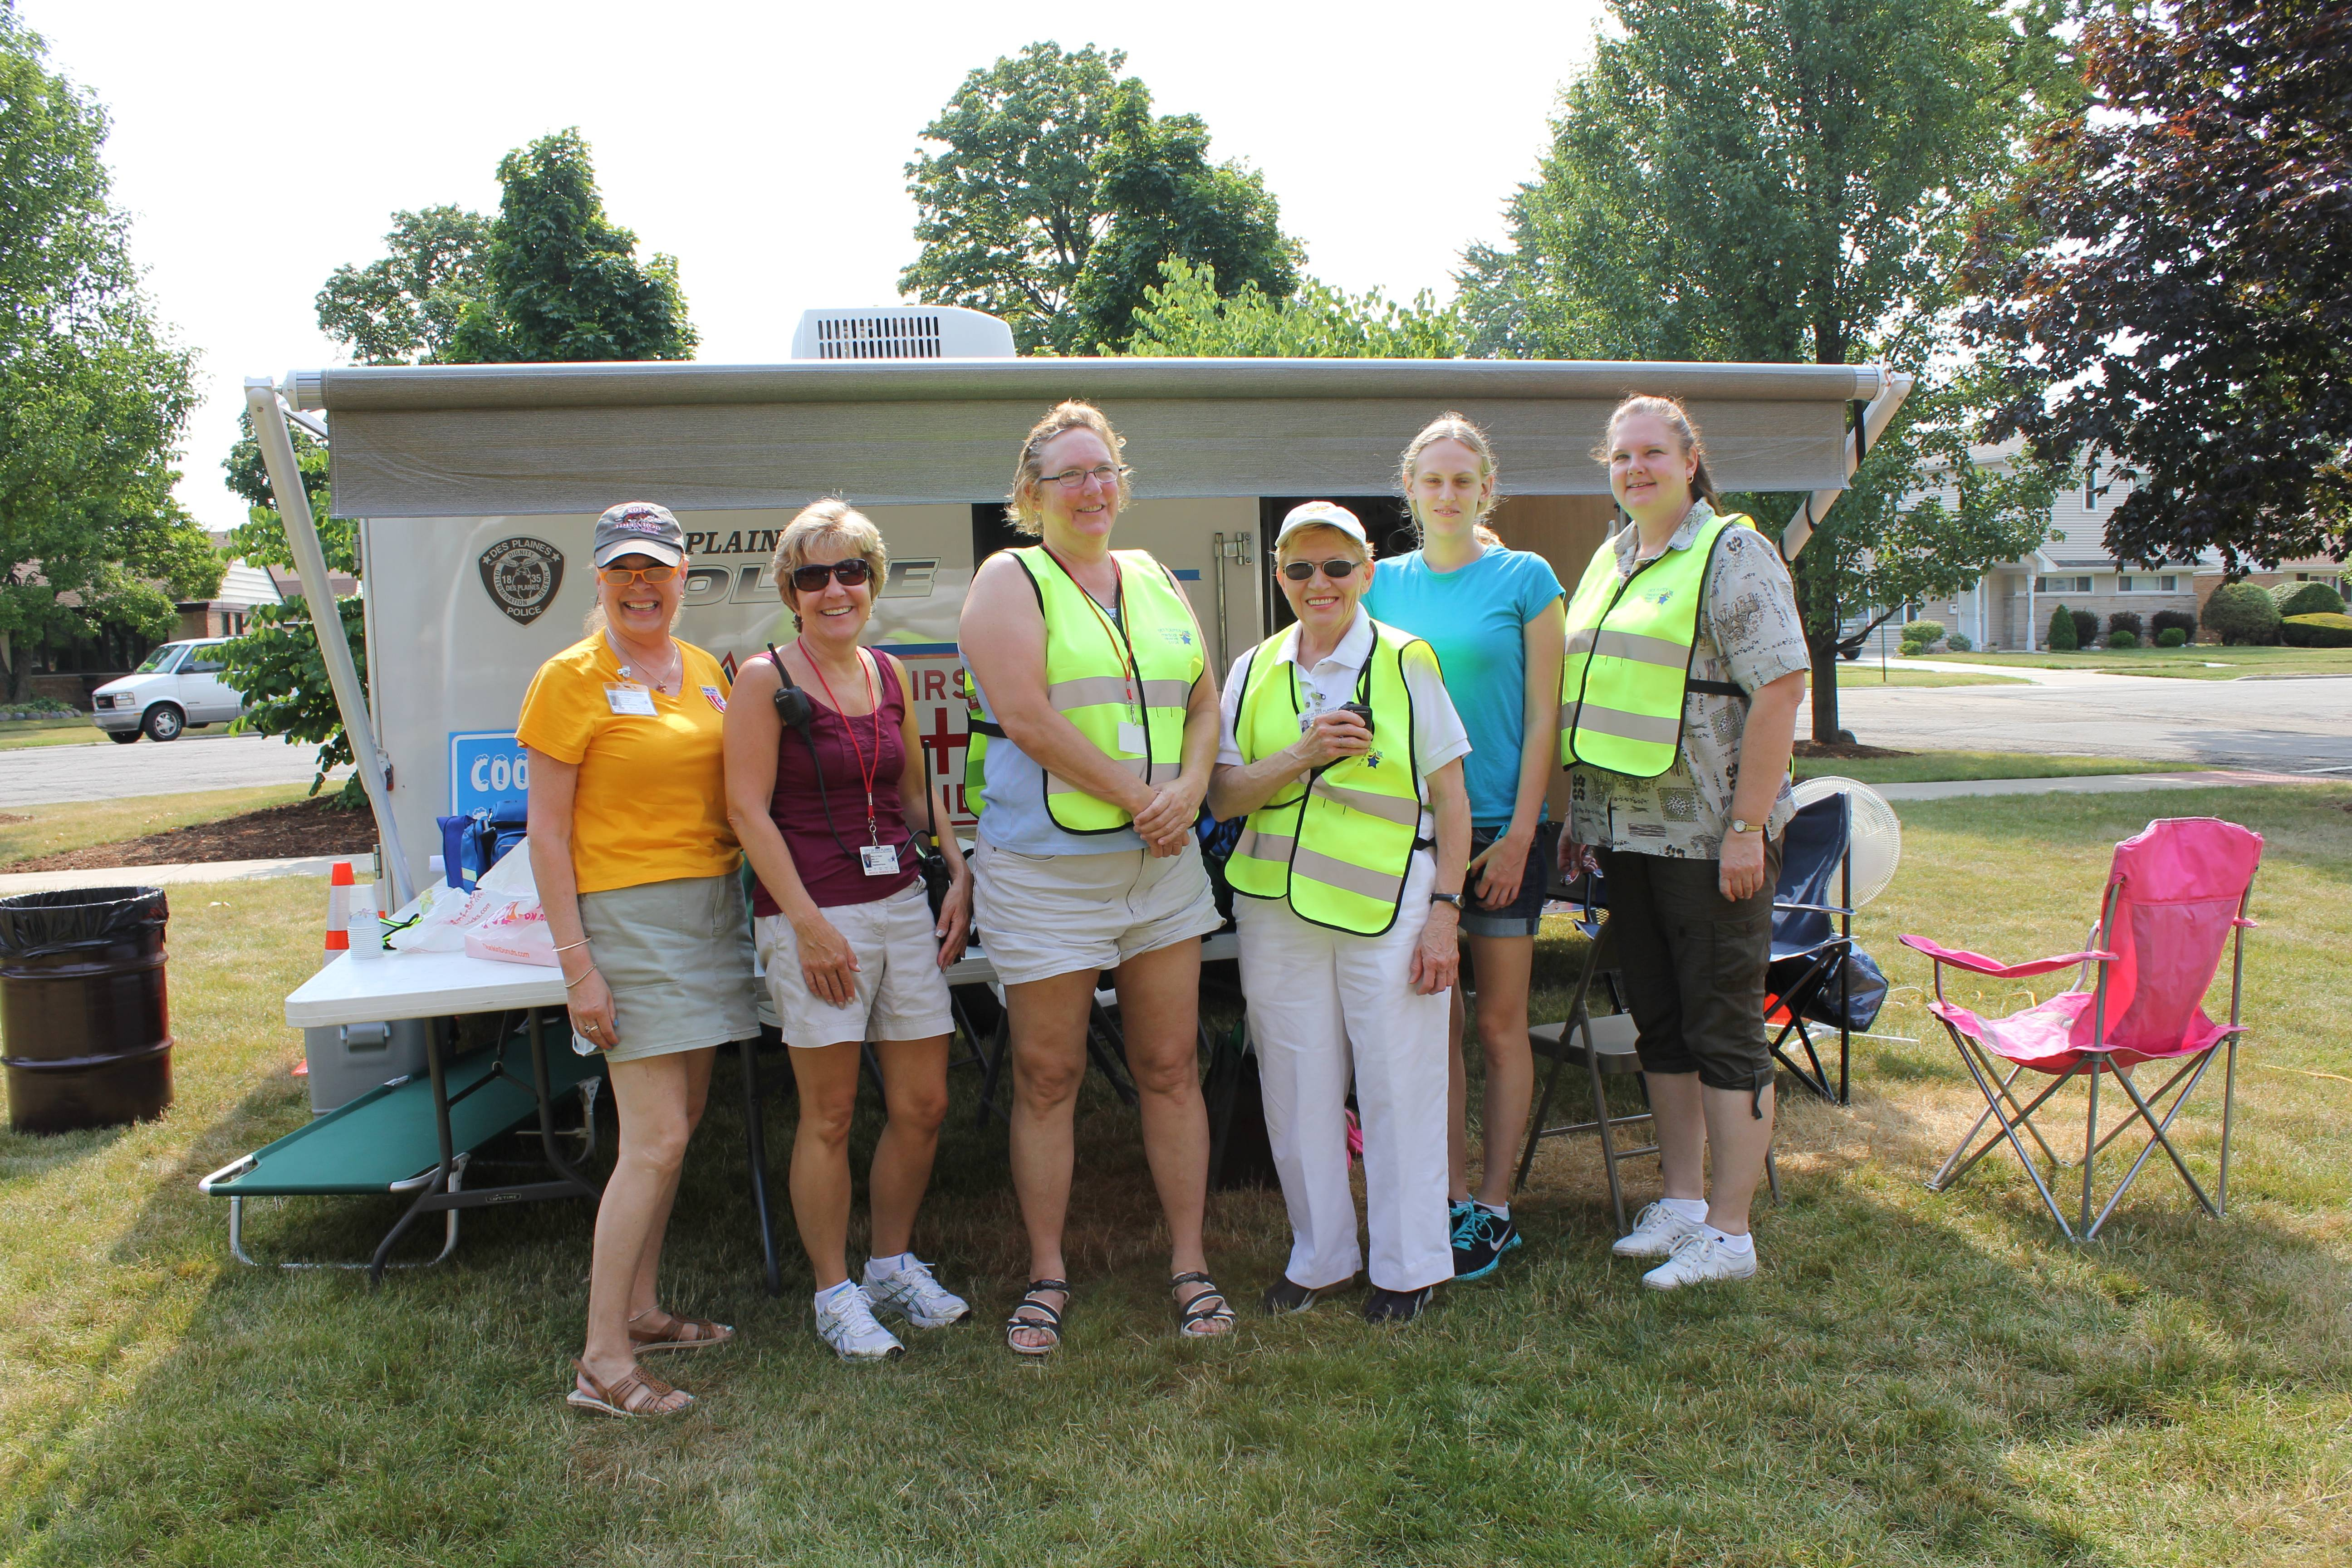 (pictured) Des Plaines Medical Reserve Corps registered nurses, Lynn Morgan, Mary Jo Coyne, Lisa Moore, Joanne Ross, Christina Moore (student nurse) and Terri Kaisling volunteer at the 2012 Tour De Villas Bike Race first aid station held in the fall.  The trailer that is pictured behind the nurses was made available through the National Association of County and City Health Officials (NACCHO). For additional information contact Community Health Nurse Madeline May at 847-391-5481.